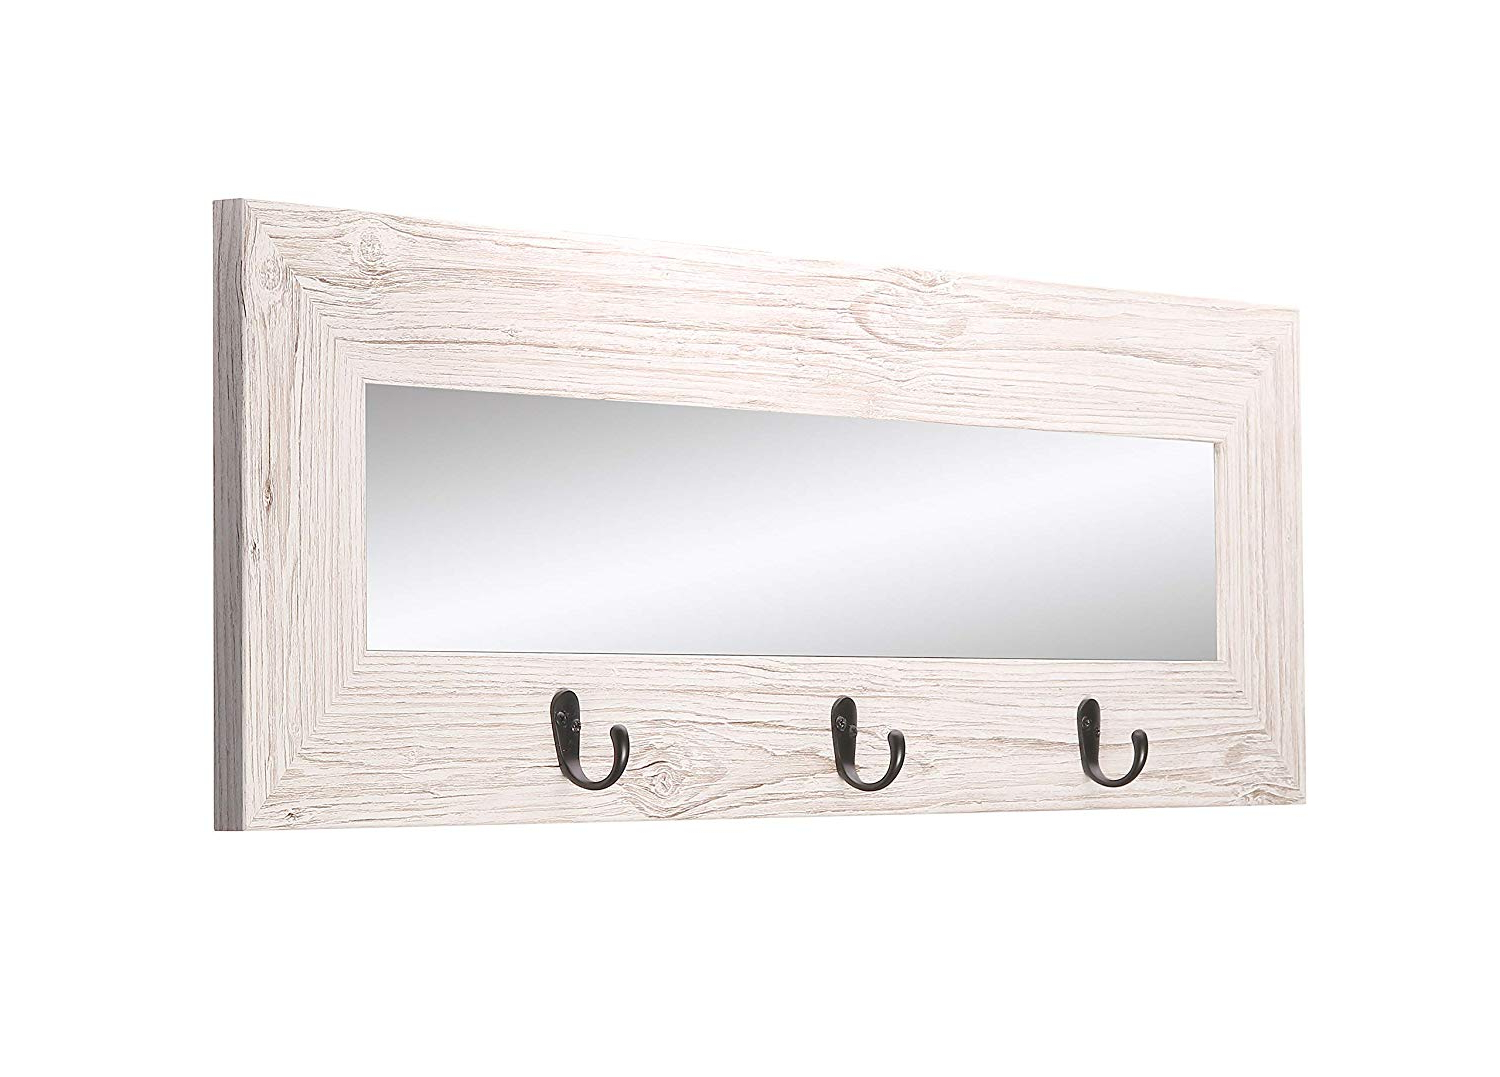 White Wall Mirrors With Hooks Throughout Recent Amazon: Brandtworks Bm008hk Last Look Farmhouse Wall (View 4 of 20)